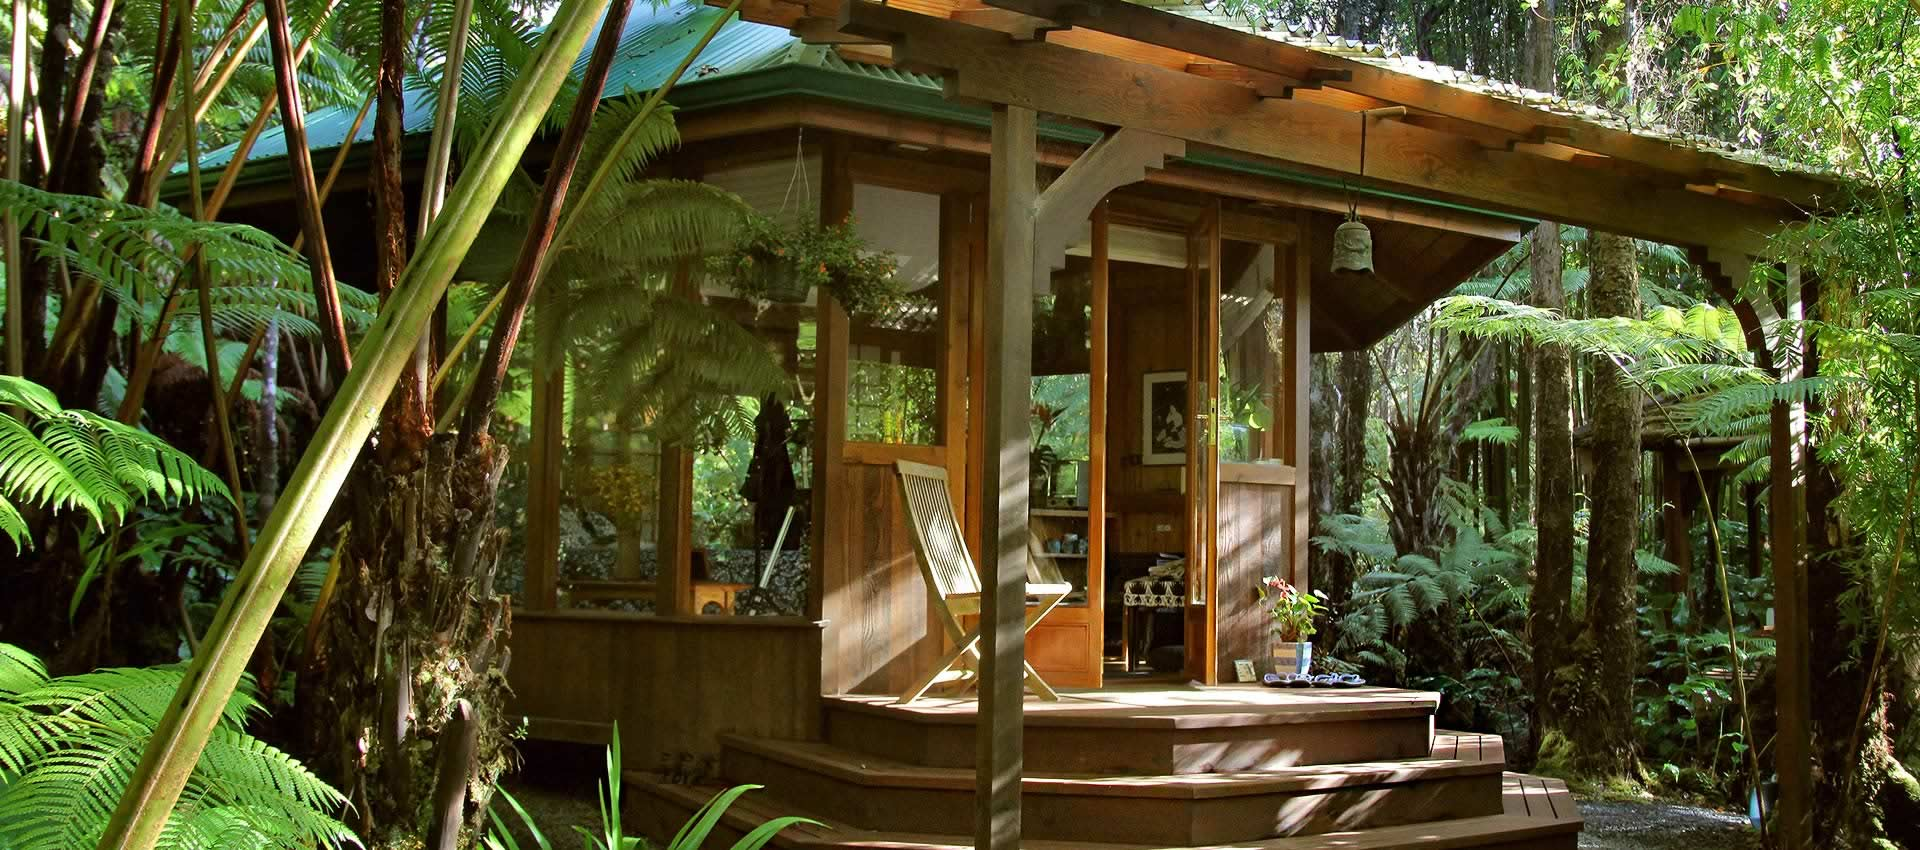 Cedar Sanctuary Cottage entrace embraced by lush tree ferns